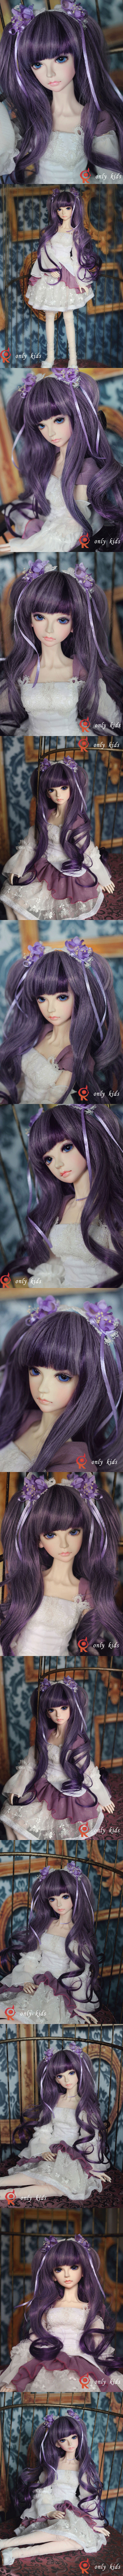 BJD Wisteria Girl 56cm Boll-jointed doll